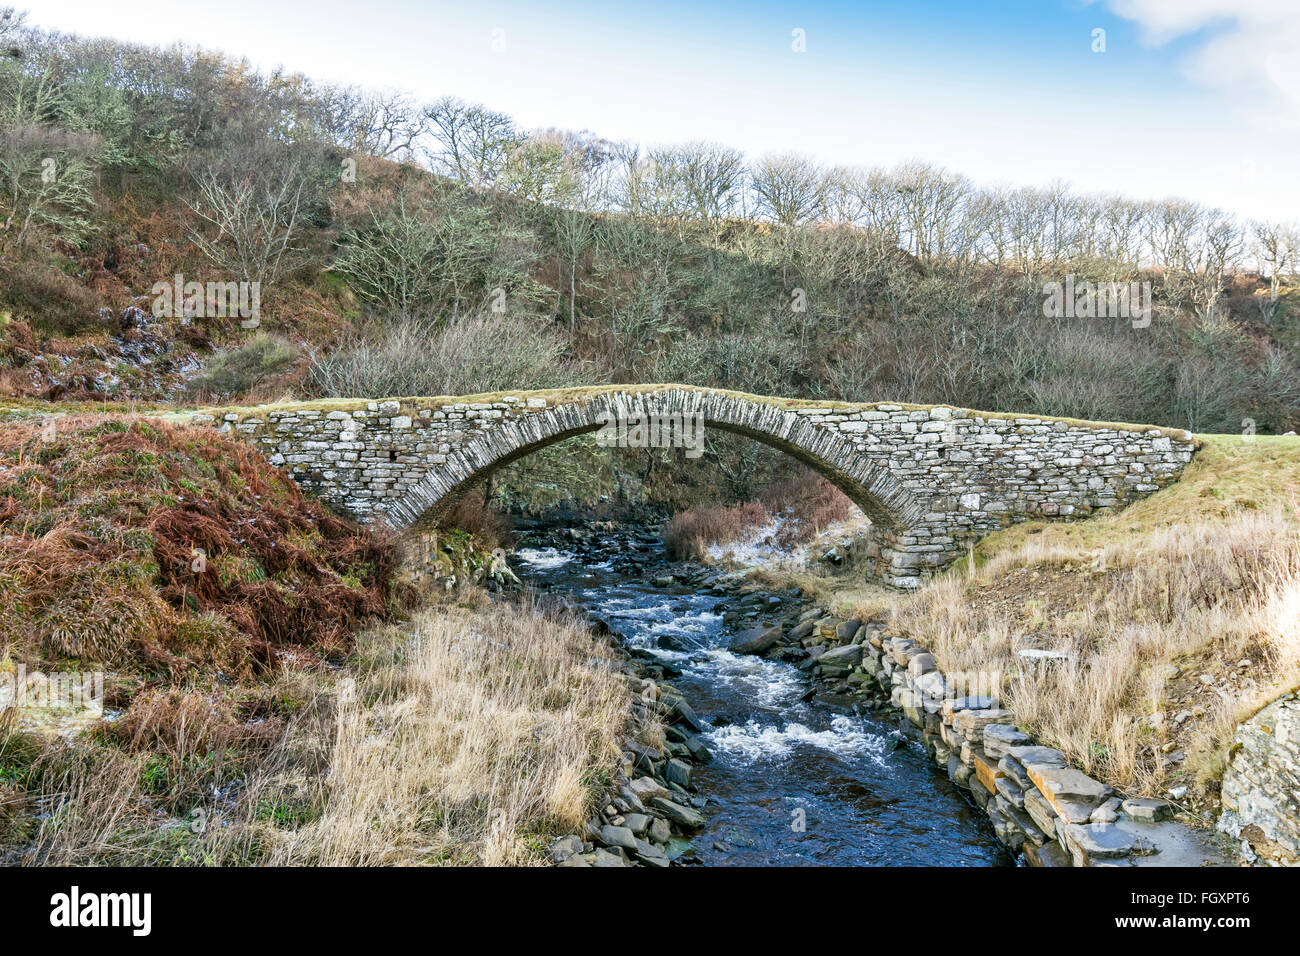 LATHERONWHEEL RIVER FLOWING UNDER A VERY OLD STONE BRIDGE NEAR TO THE HARBOUR AND SEA - Stock Image